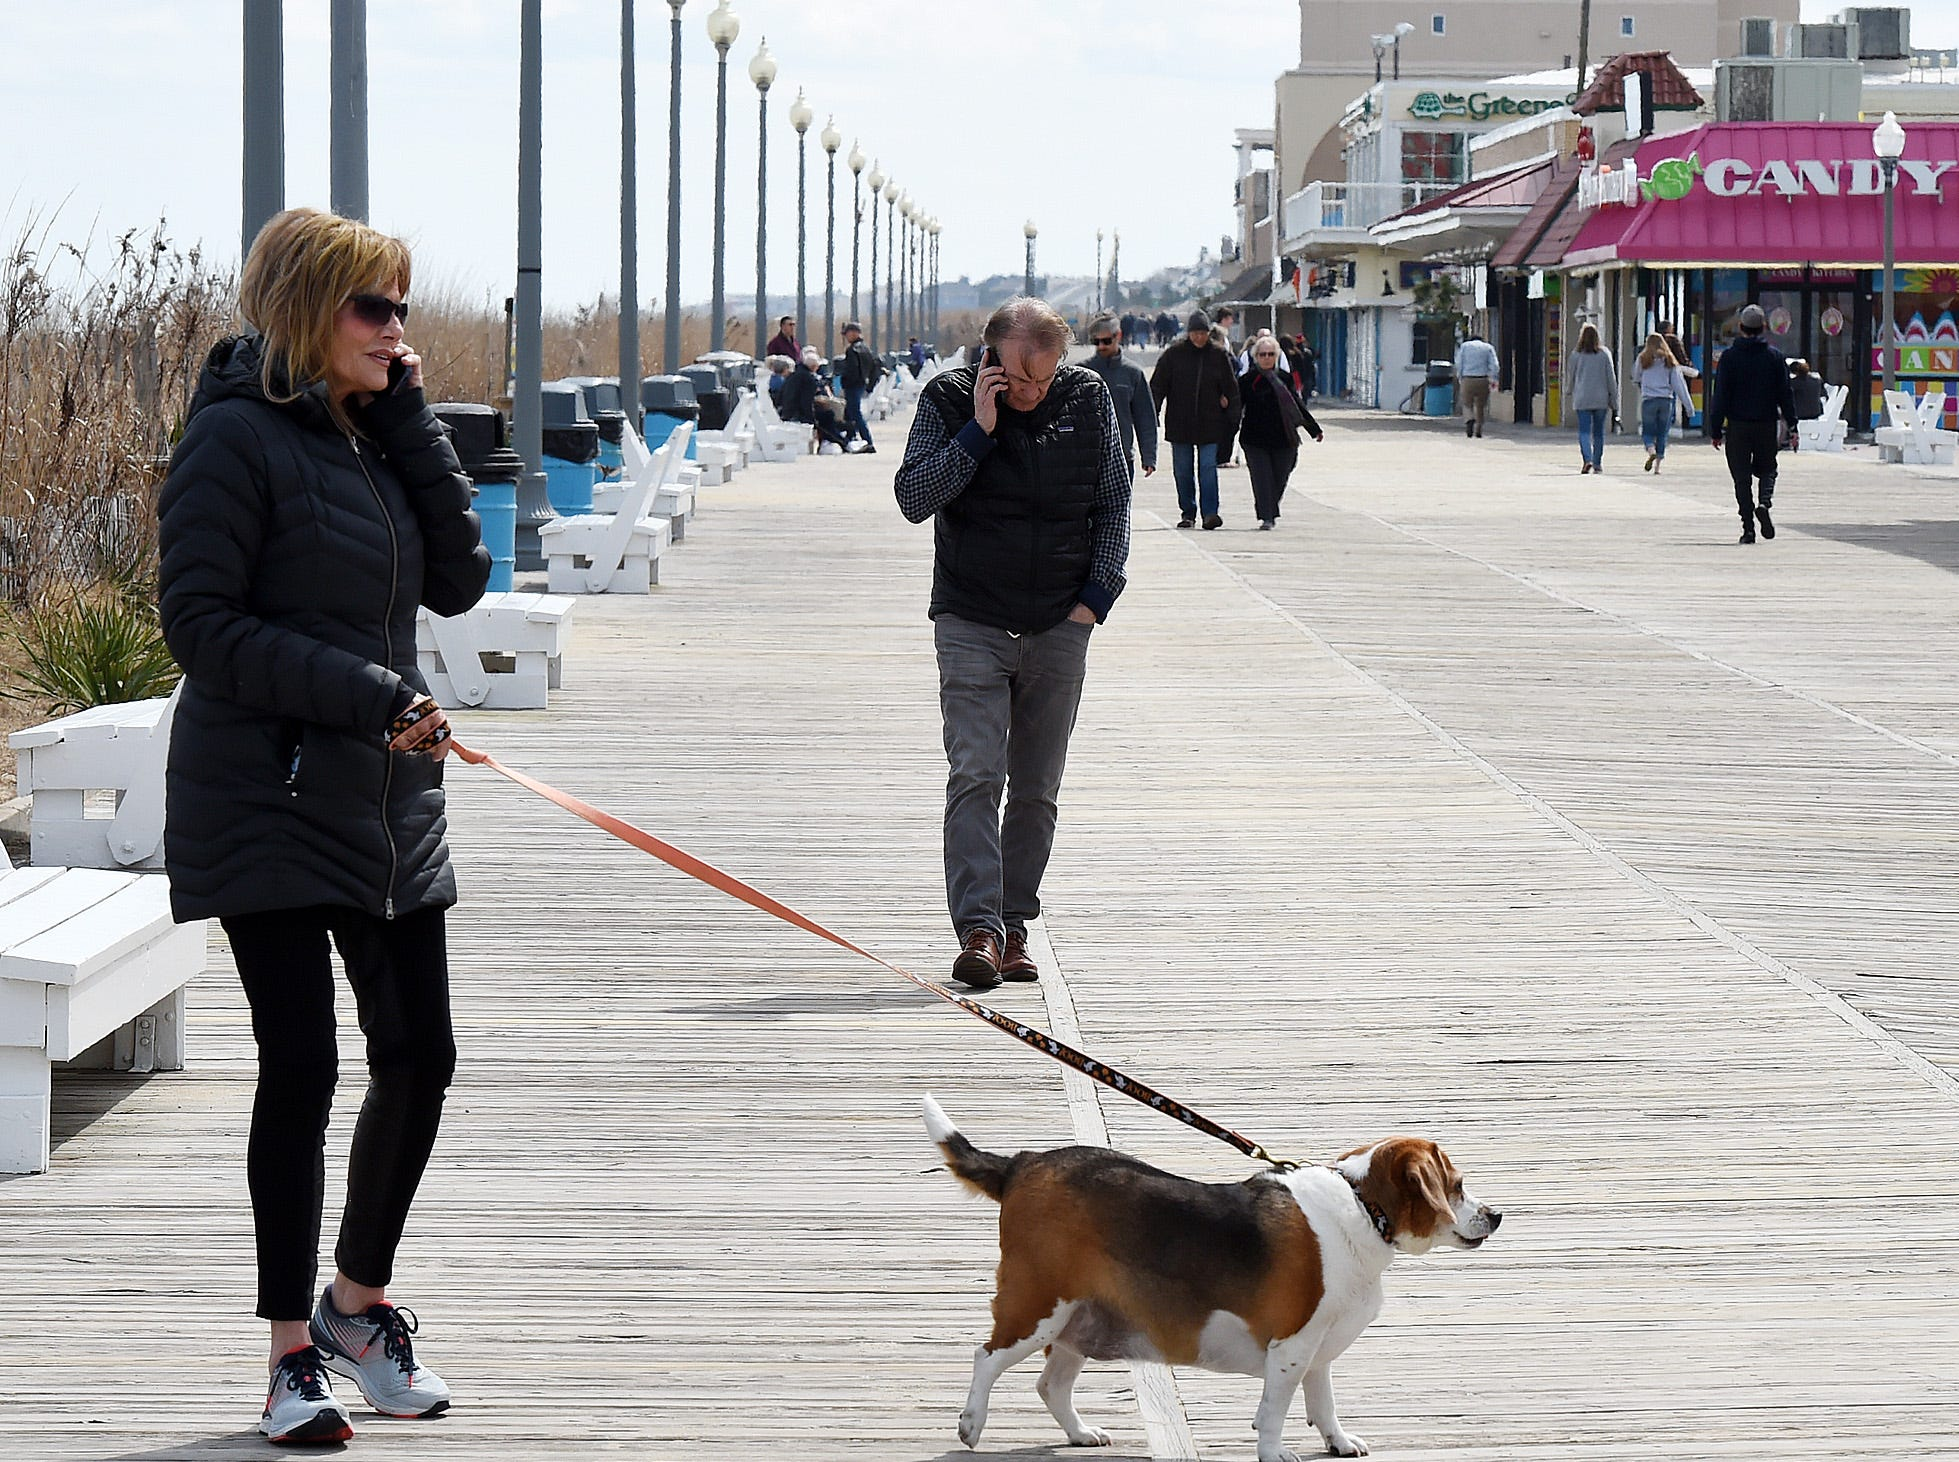 Some people did venture out to the beach and boardwalk to walk their pets, sit on the beach, buy some popcorn or just enjoy the outdoors on 2019's first day of spring.